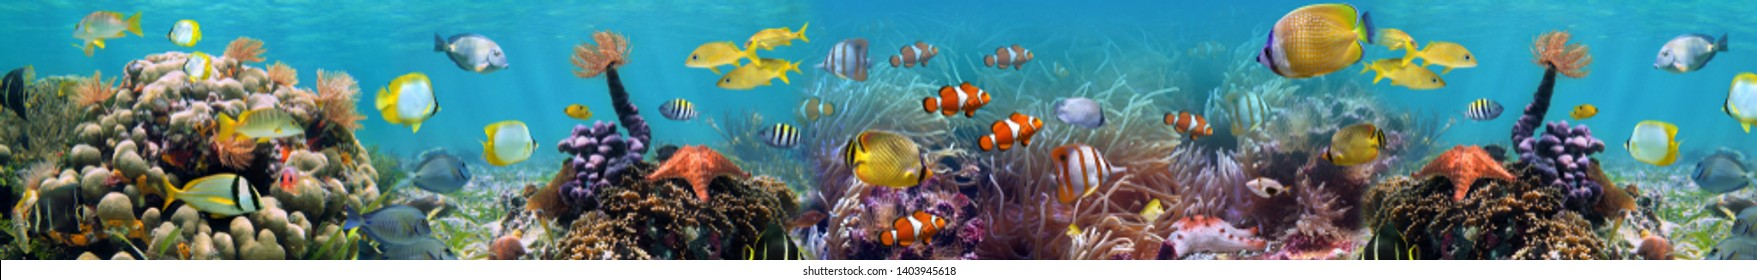 Beautiful underwater world coral reef panorama landscape. Horizontal banner. High quality image for glass panels (skinali).